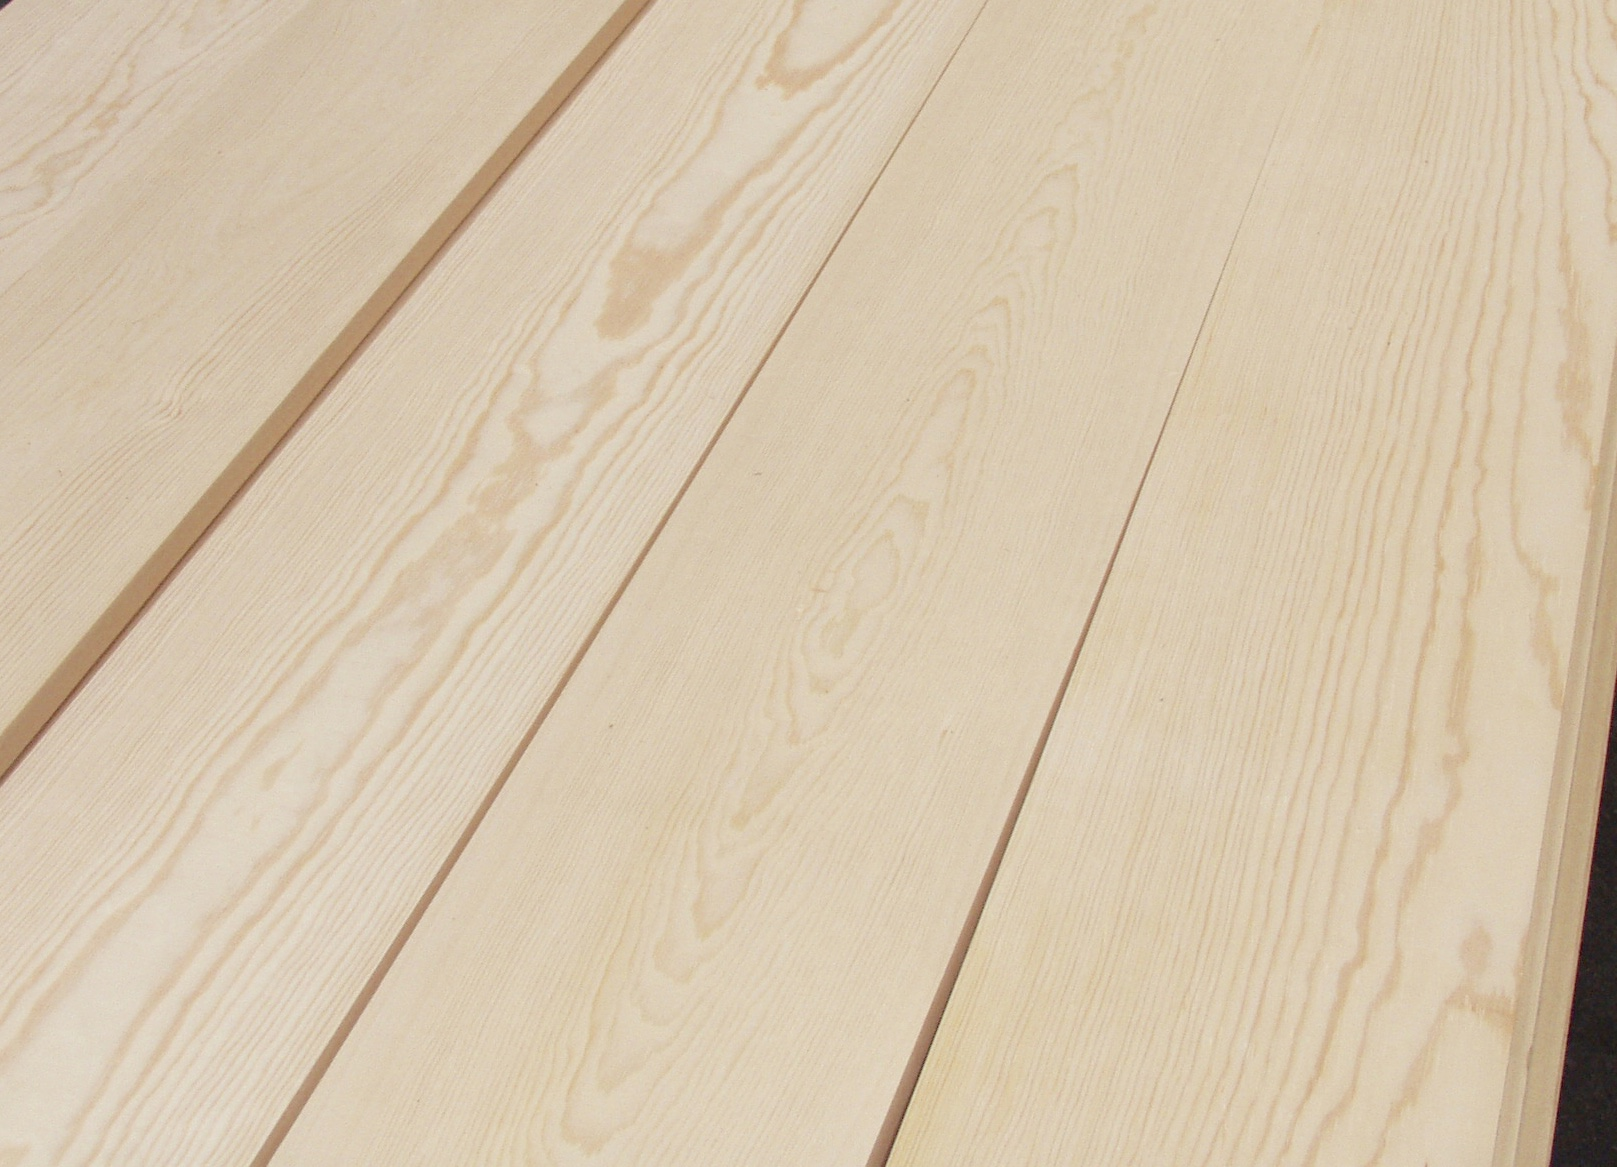 Make Your Own Tongue And Groove Flooring